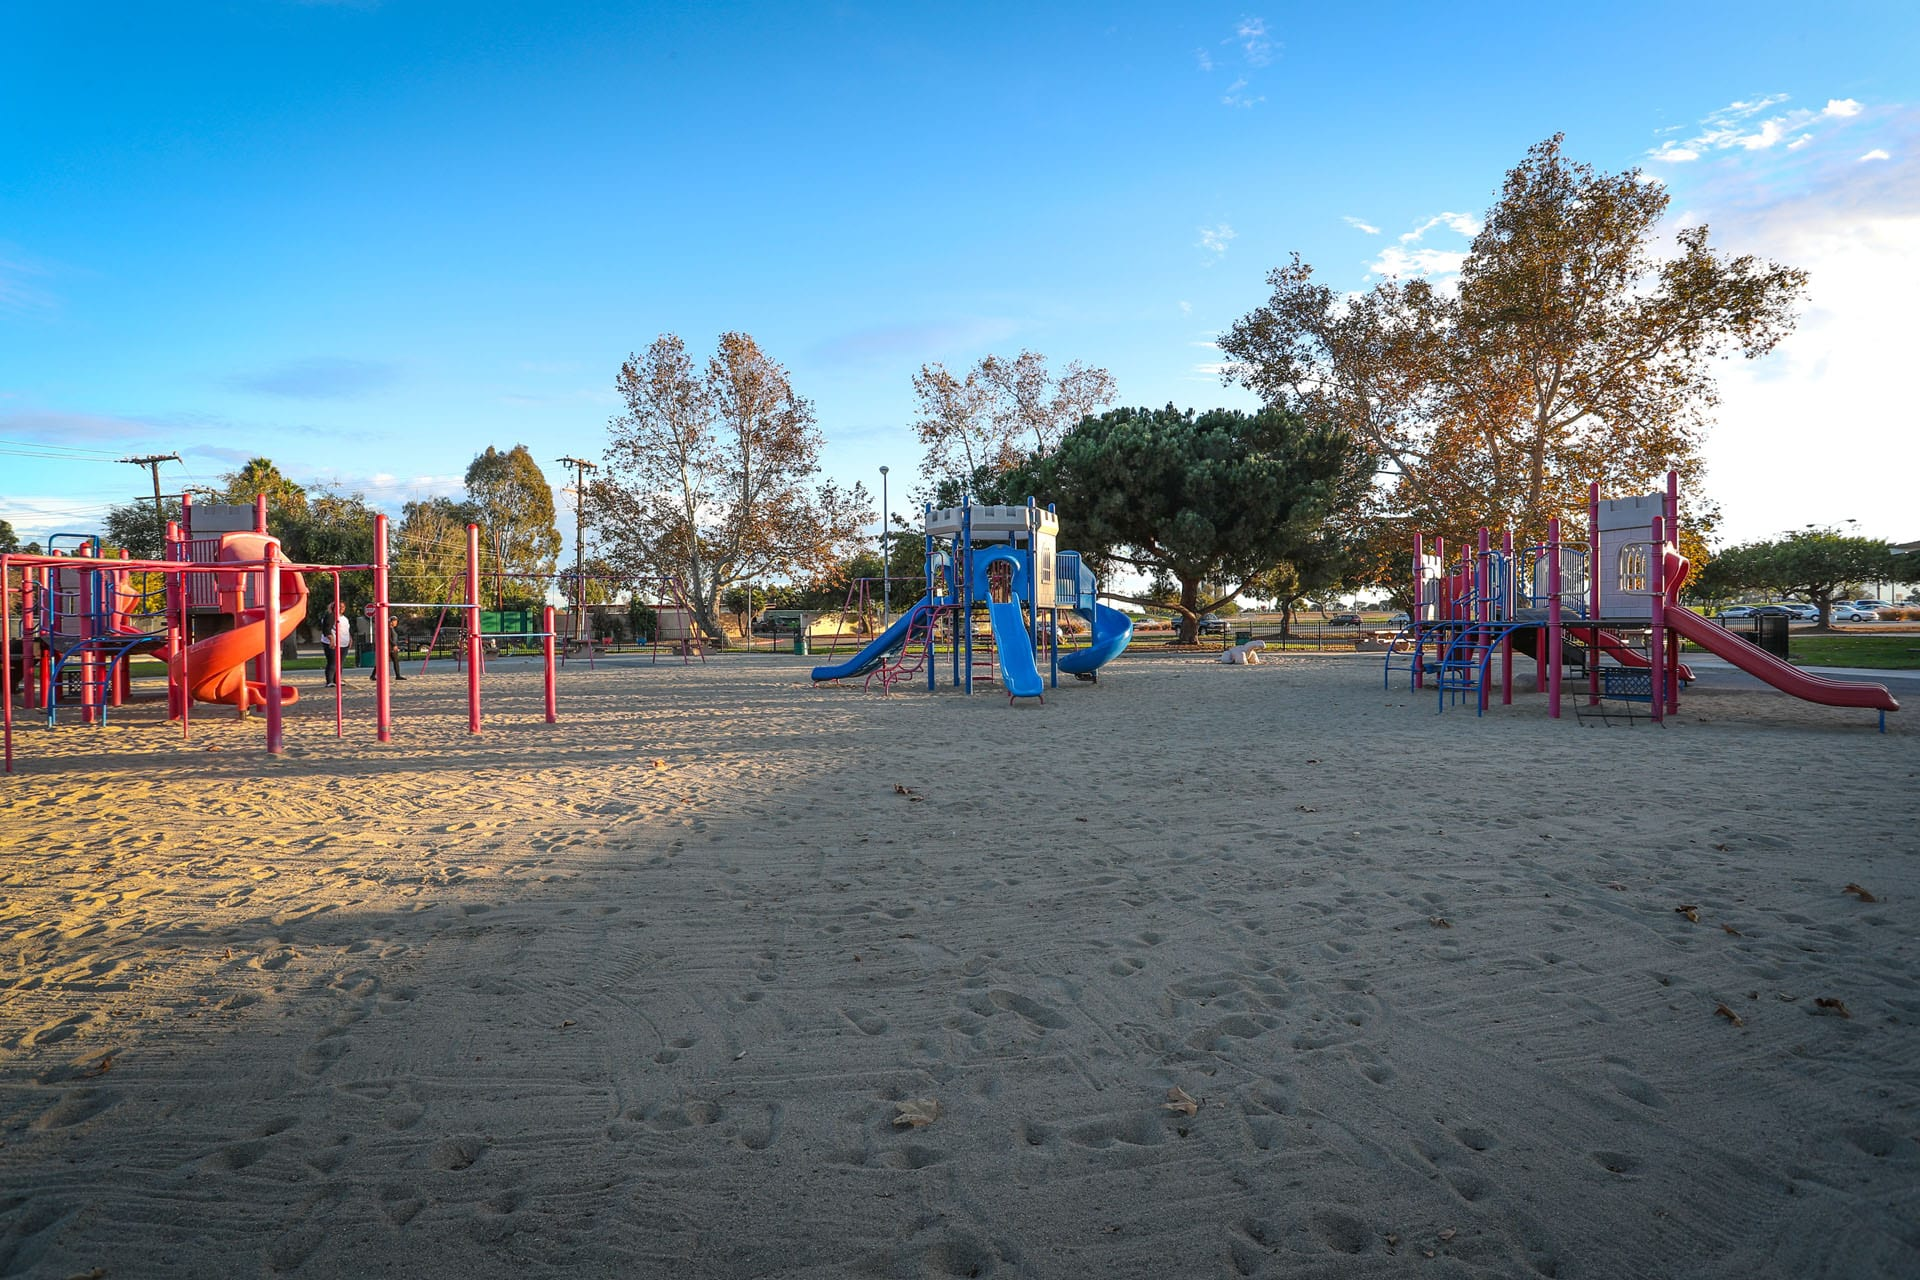 Jungle gym and playgrounds on a sand turf